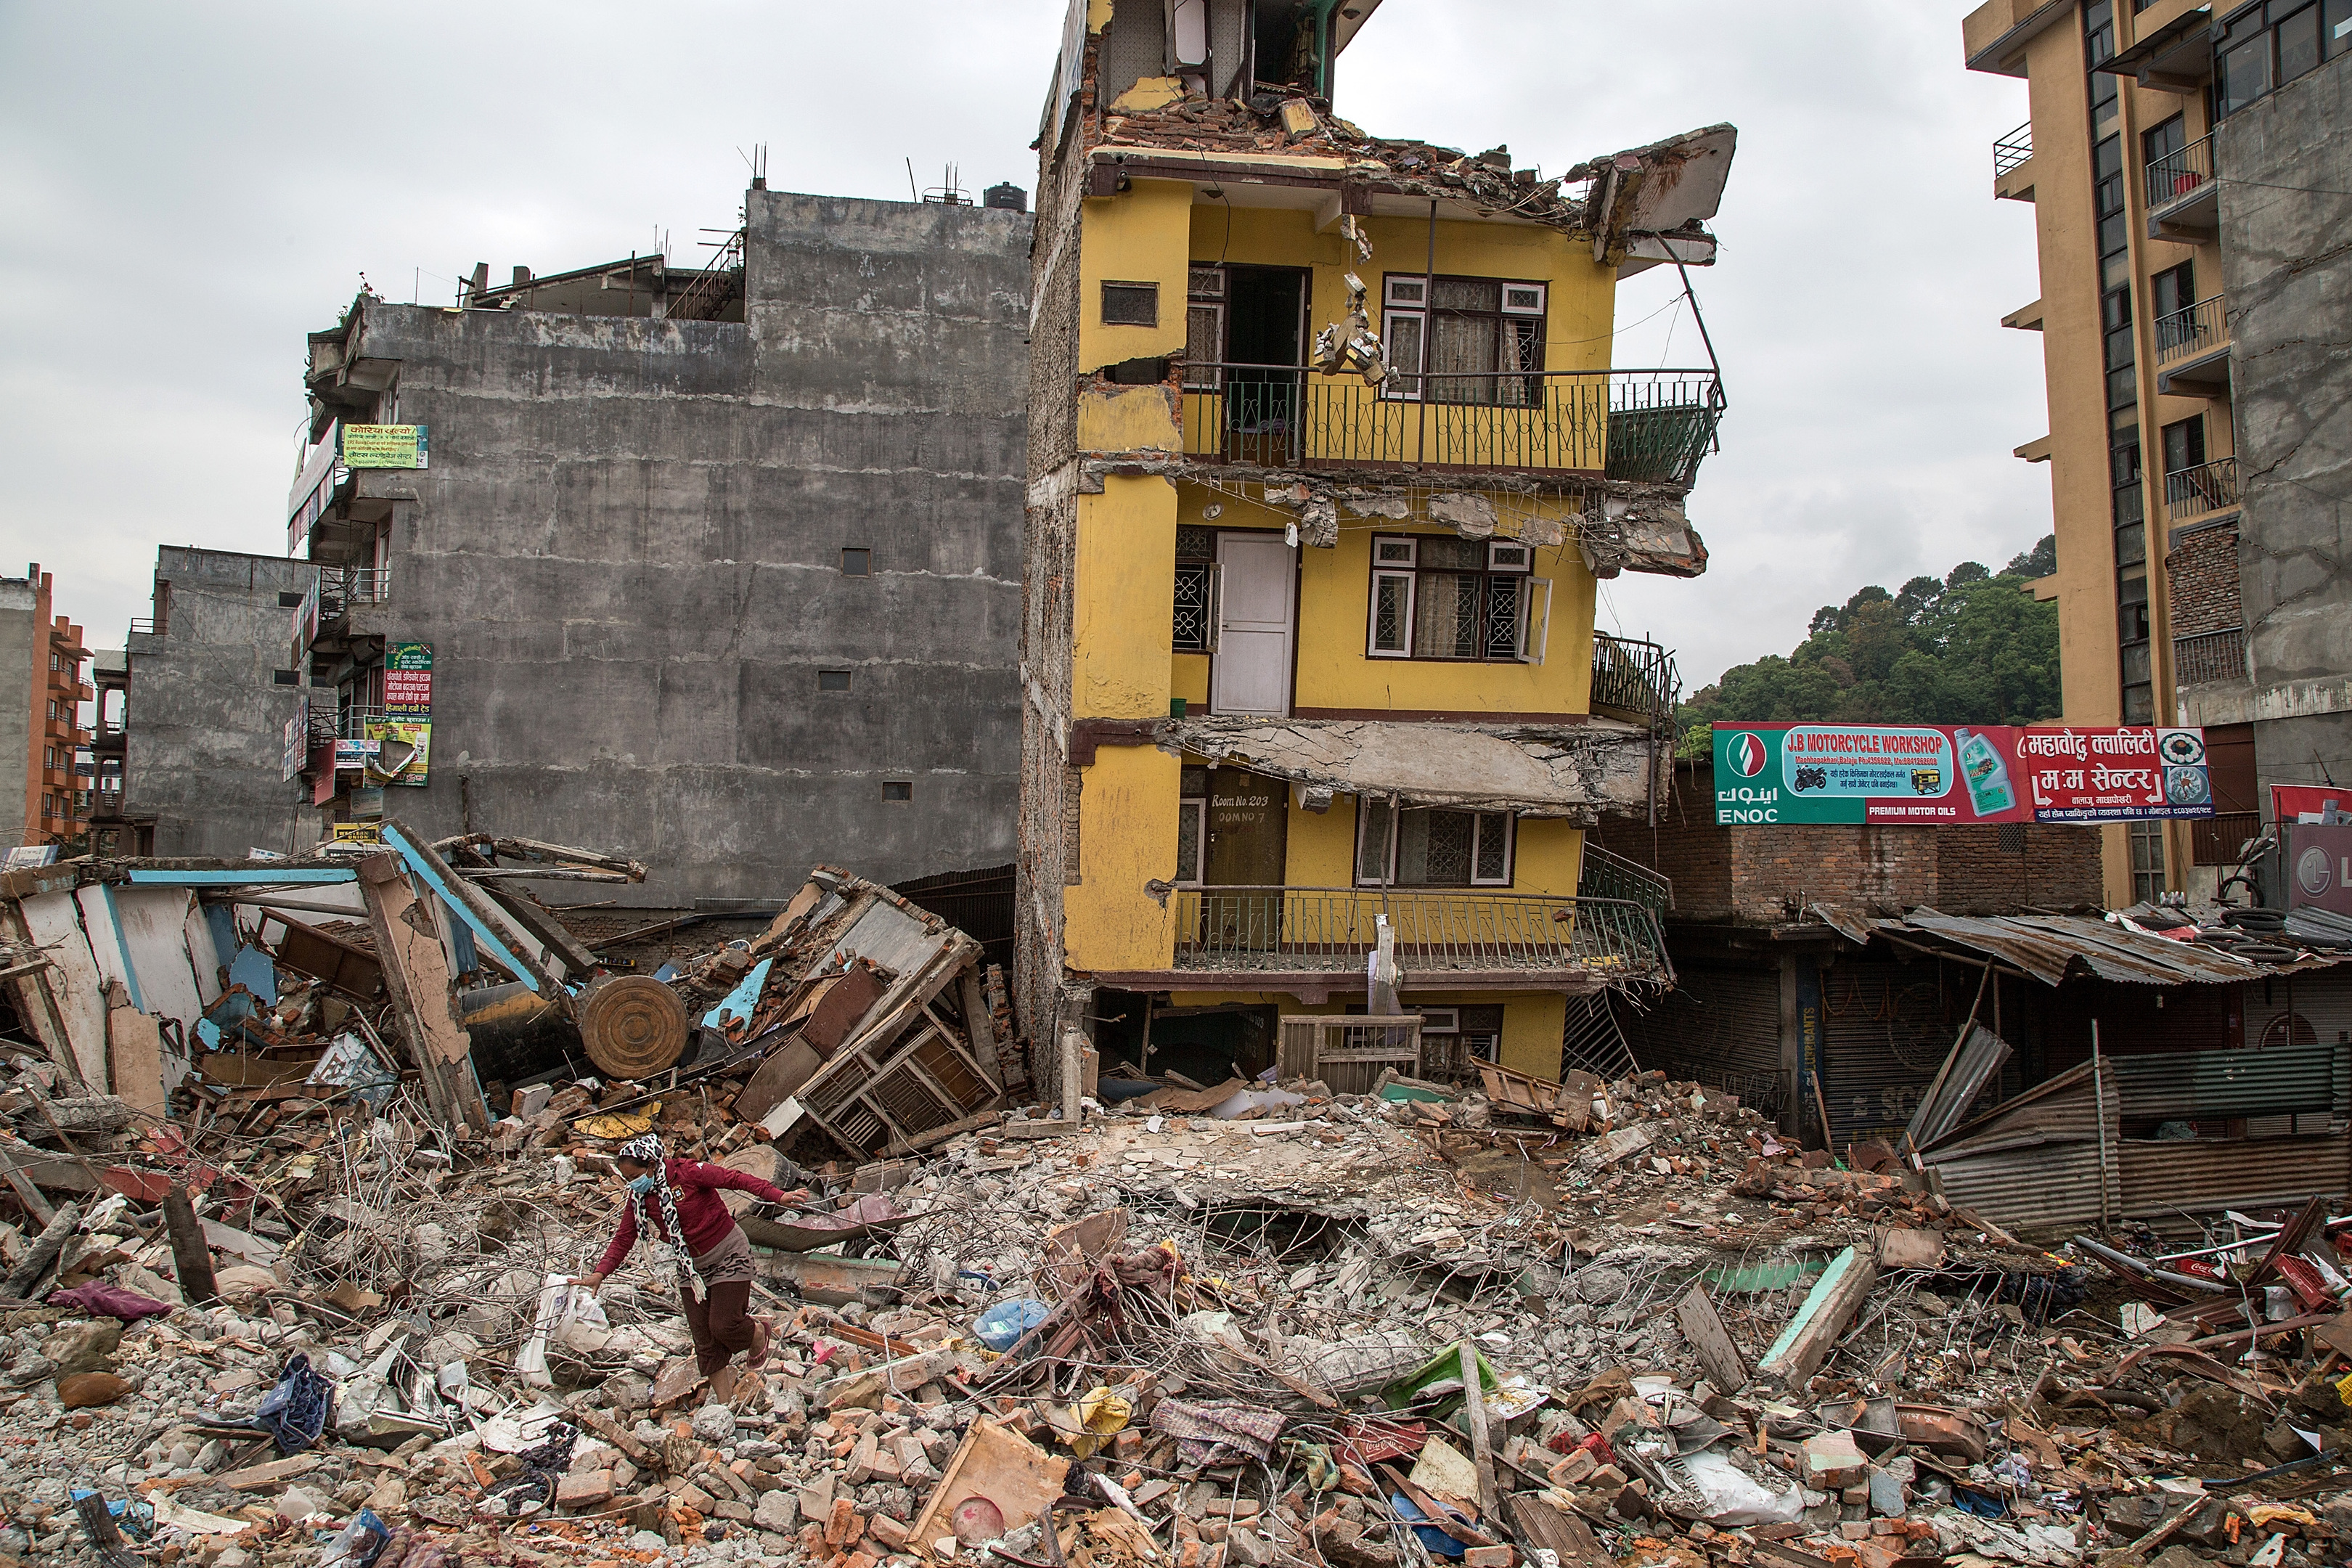 The earthquake devastated large parts of the country.